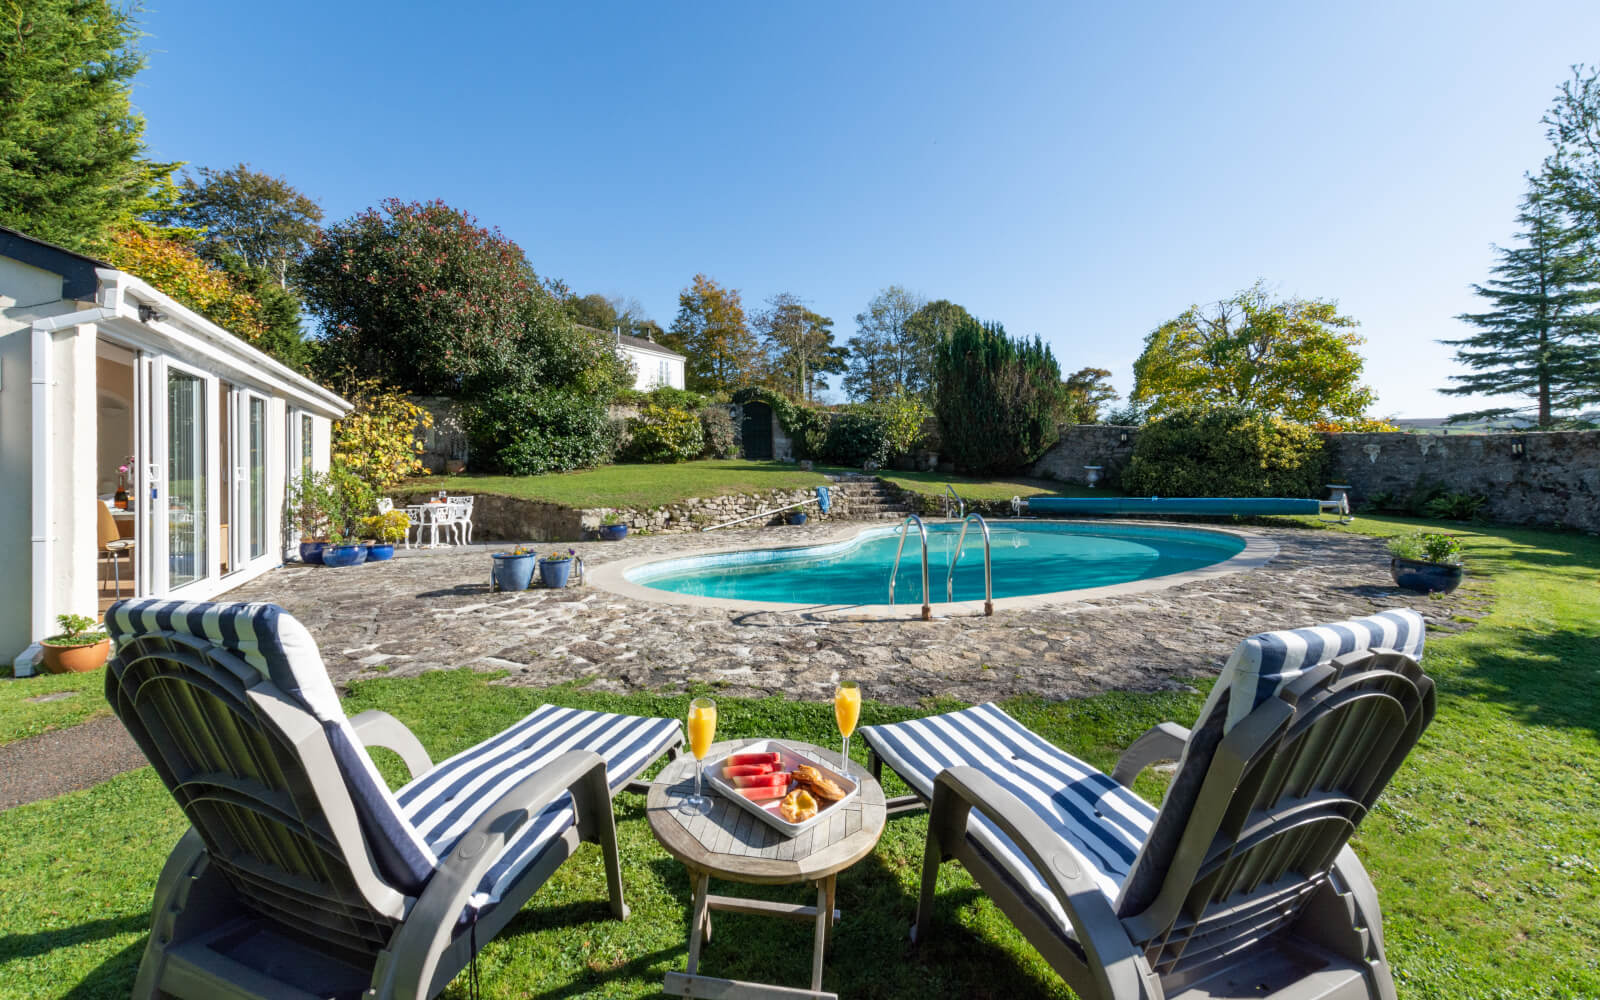 Holiday Cottages With Swimming Pools In Wiggenhall St. Mary Magdalen To Rent - Save up to 60%